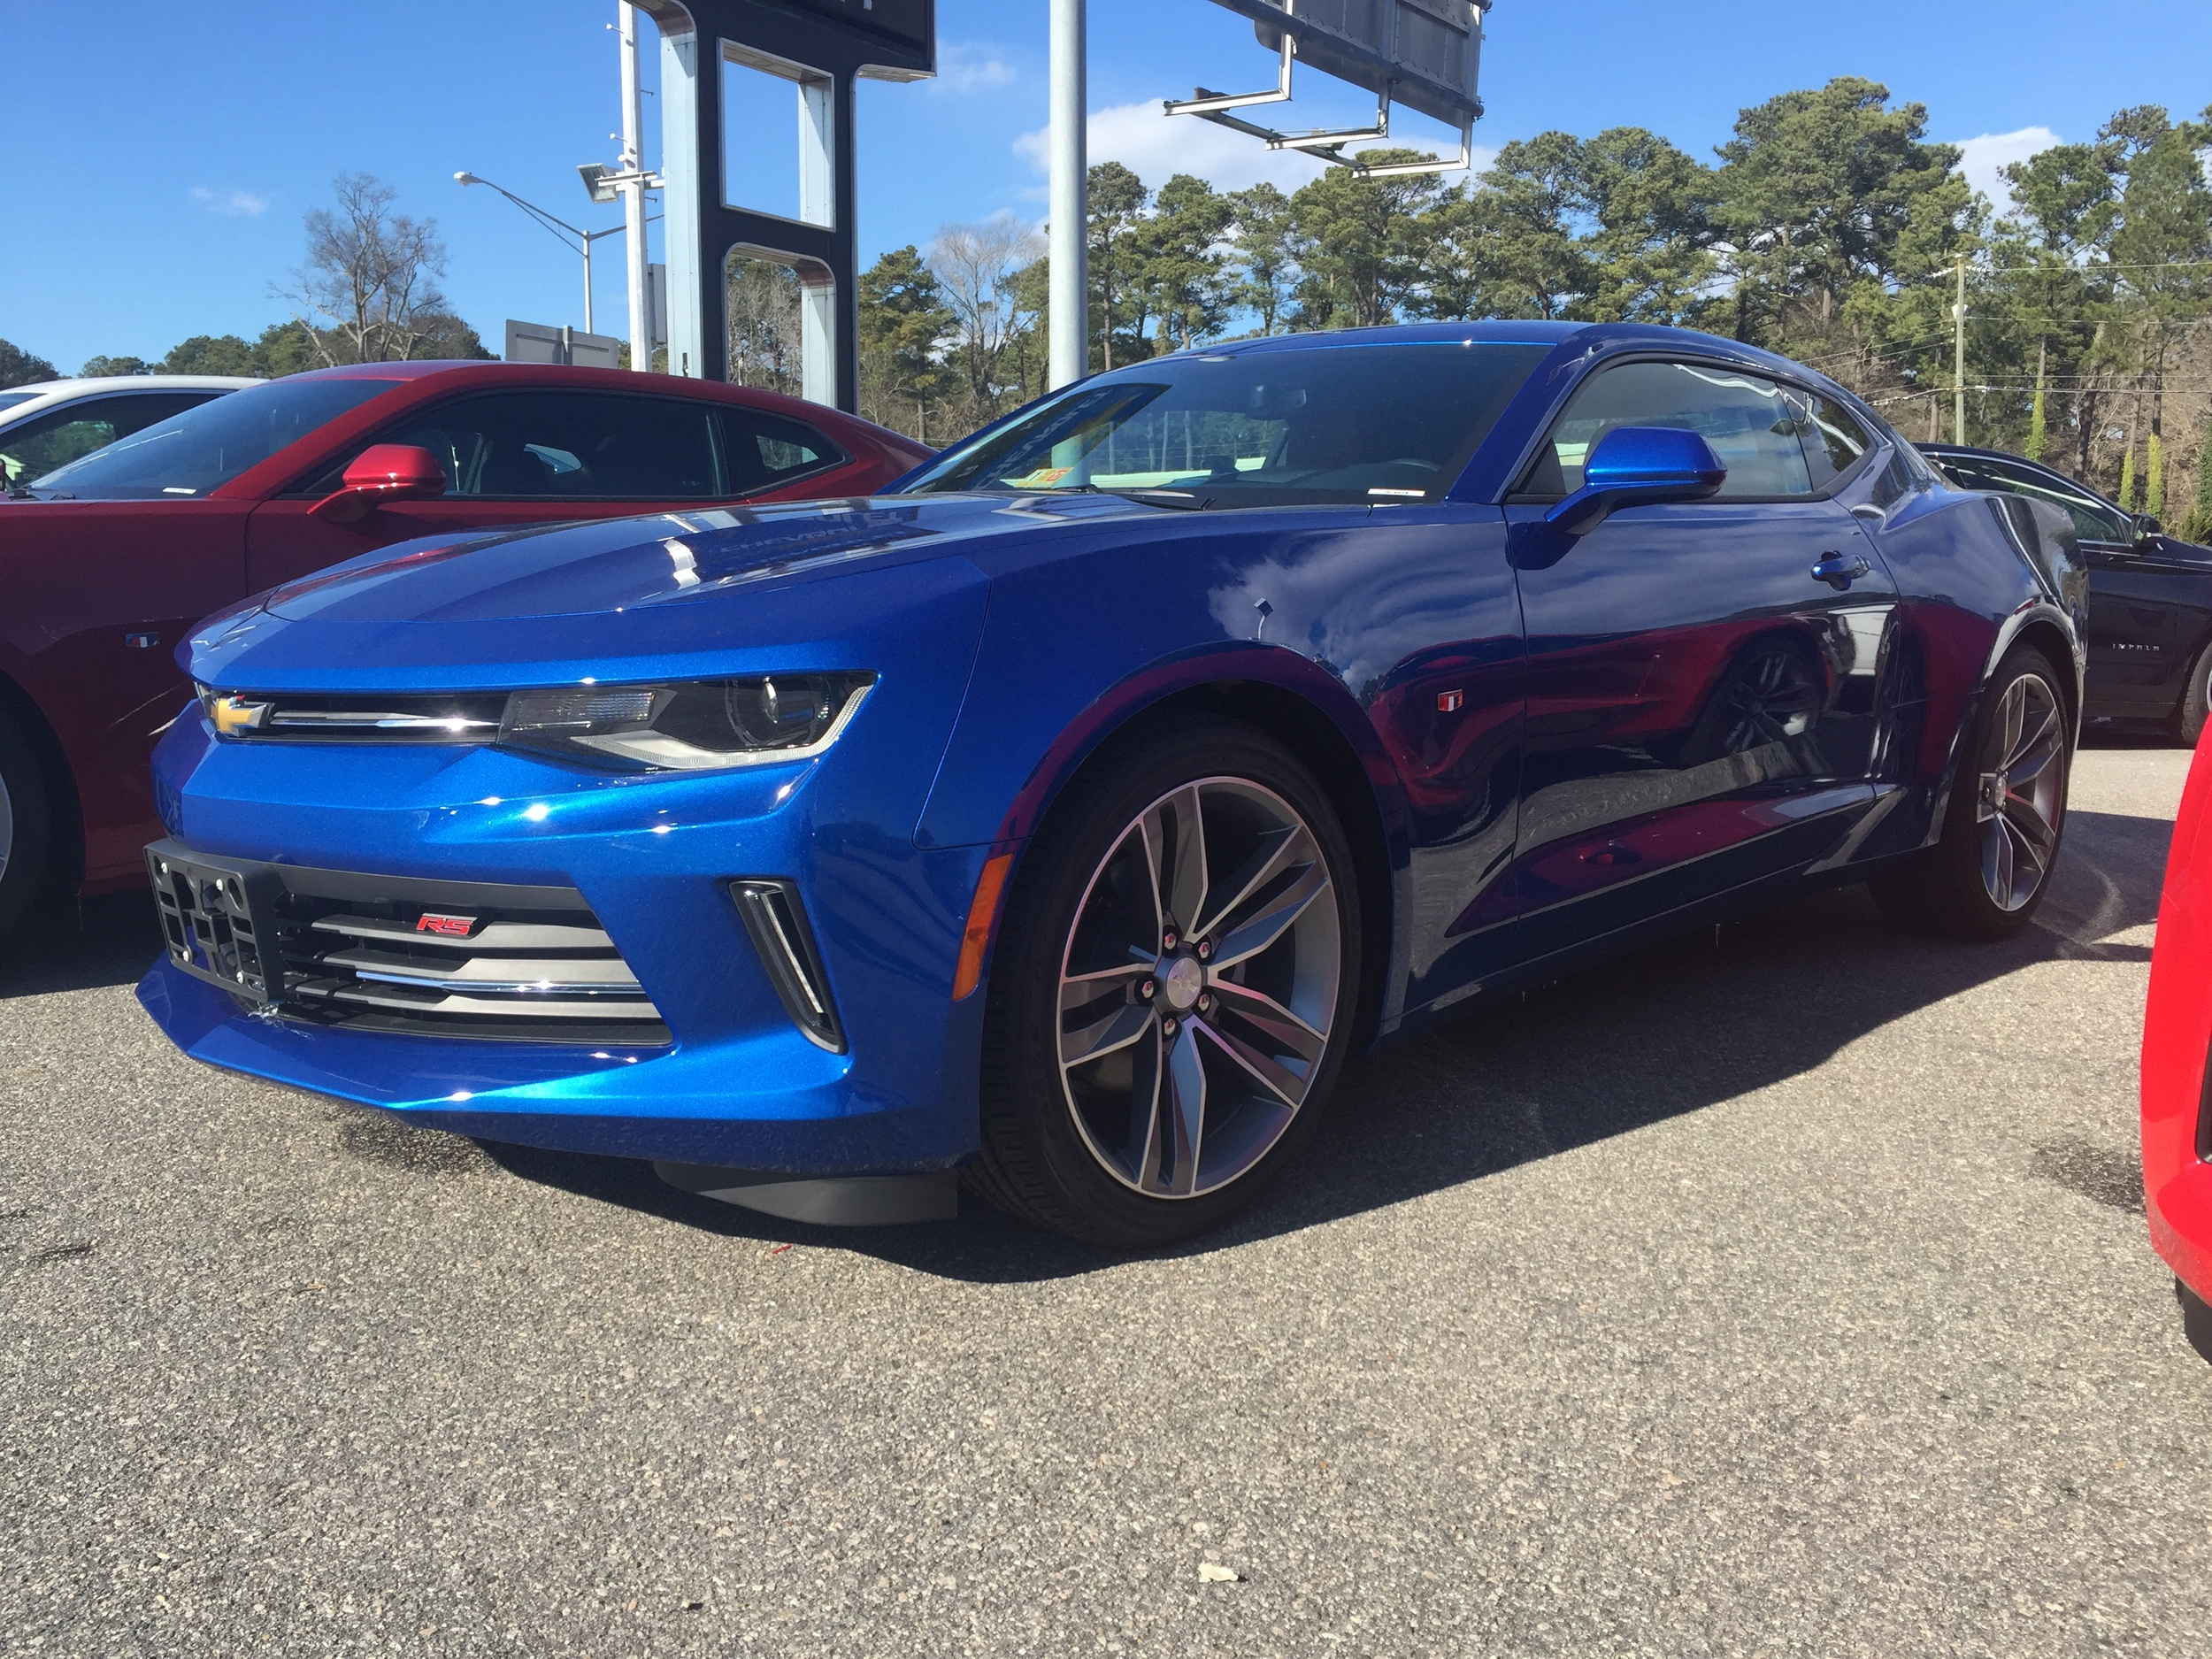 Camaro LT1 Horsepower Virginia Speed